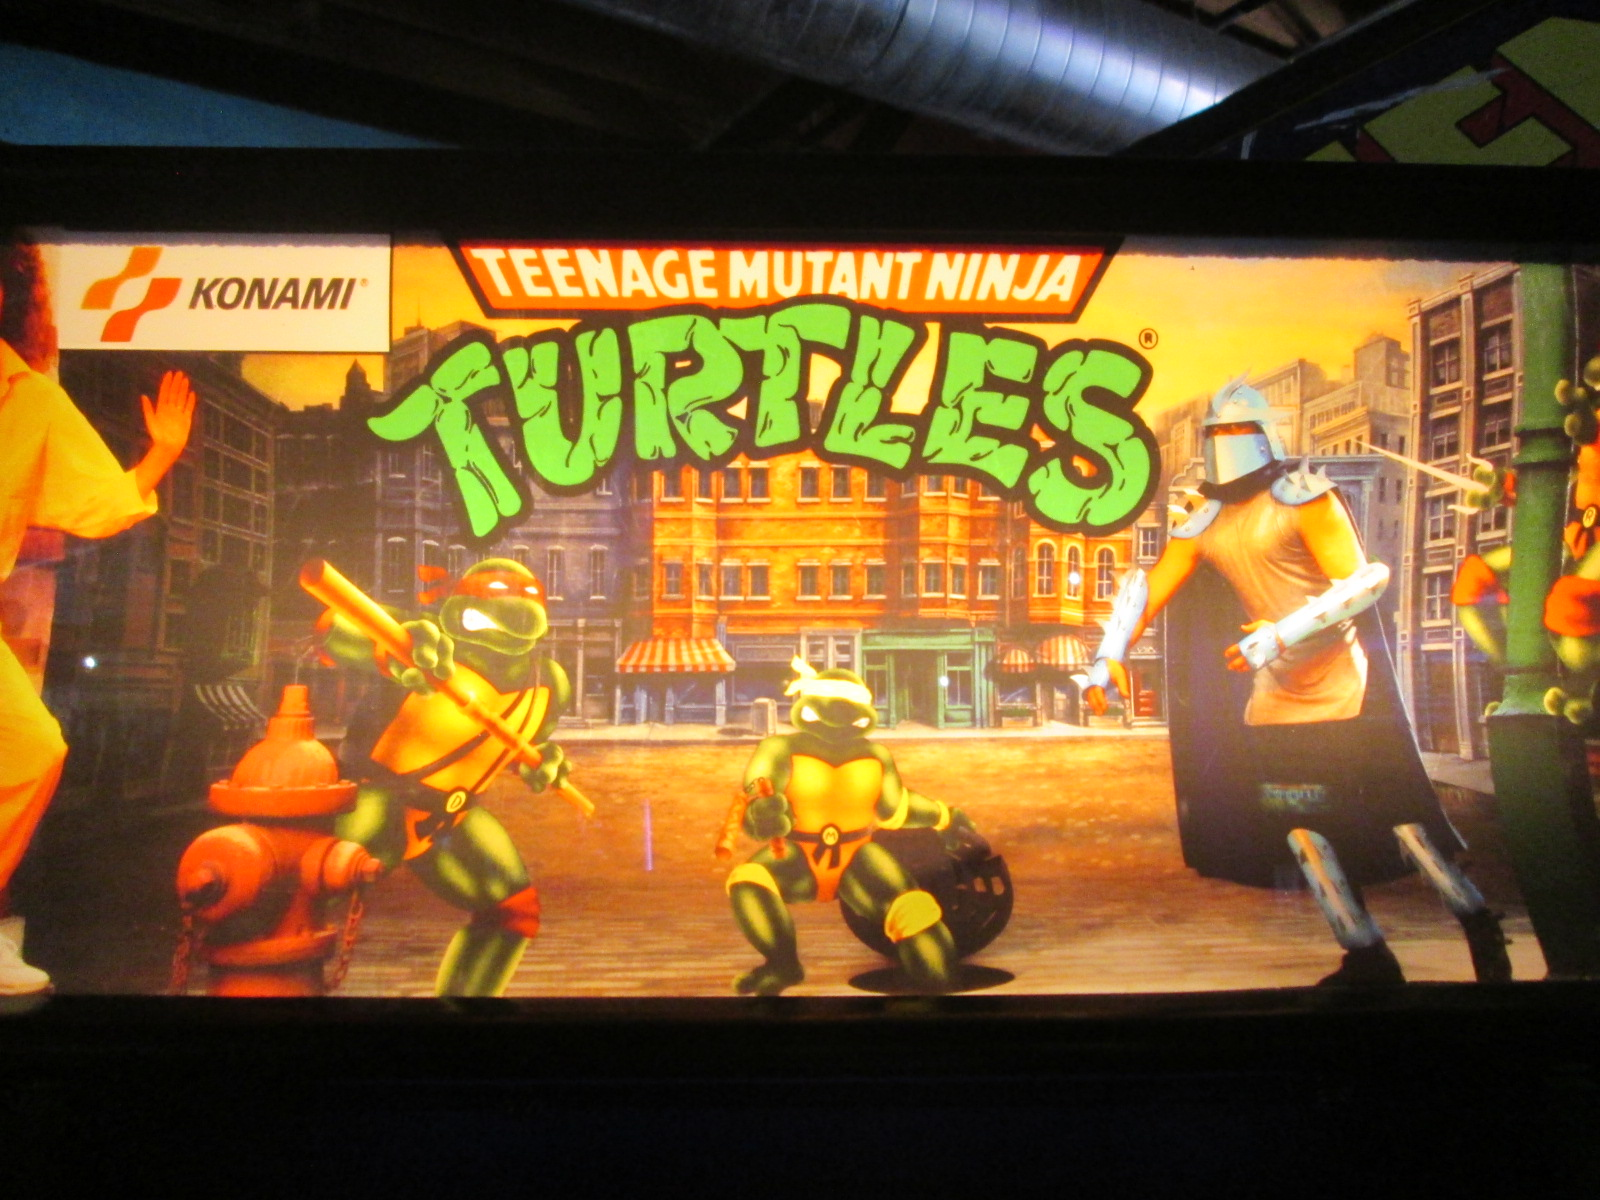 ed1475: Teenage Mutant Ninja Turtles (Arcade) 26 points on 2016-09-11 16:20:02